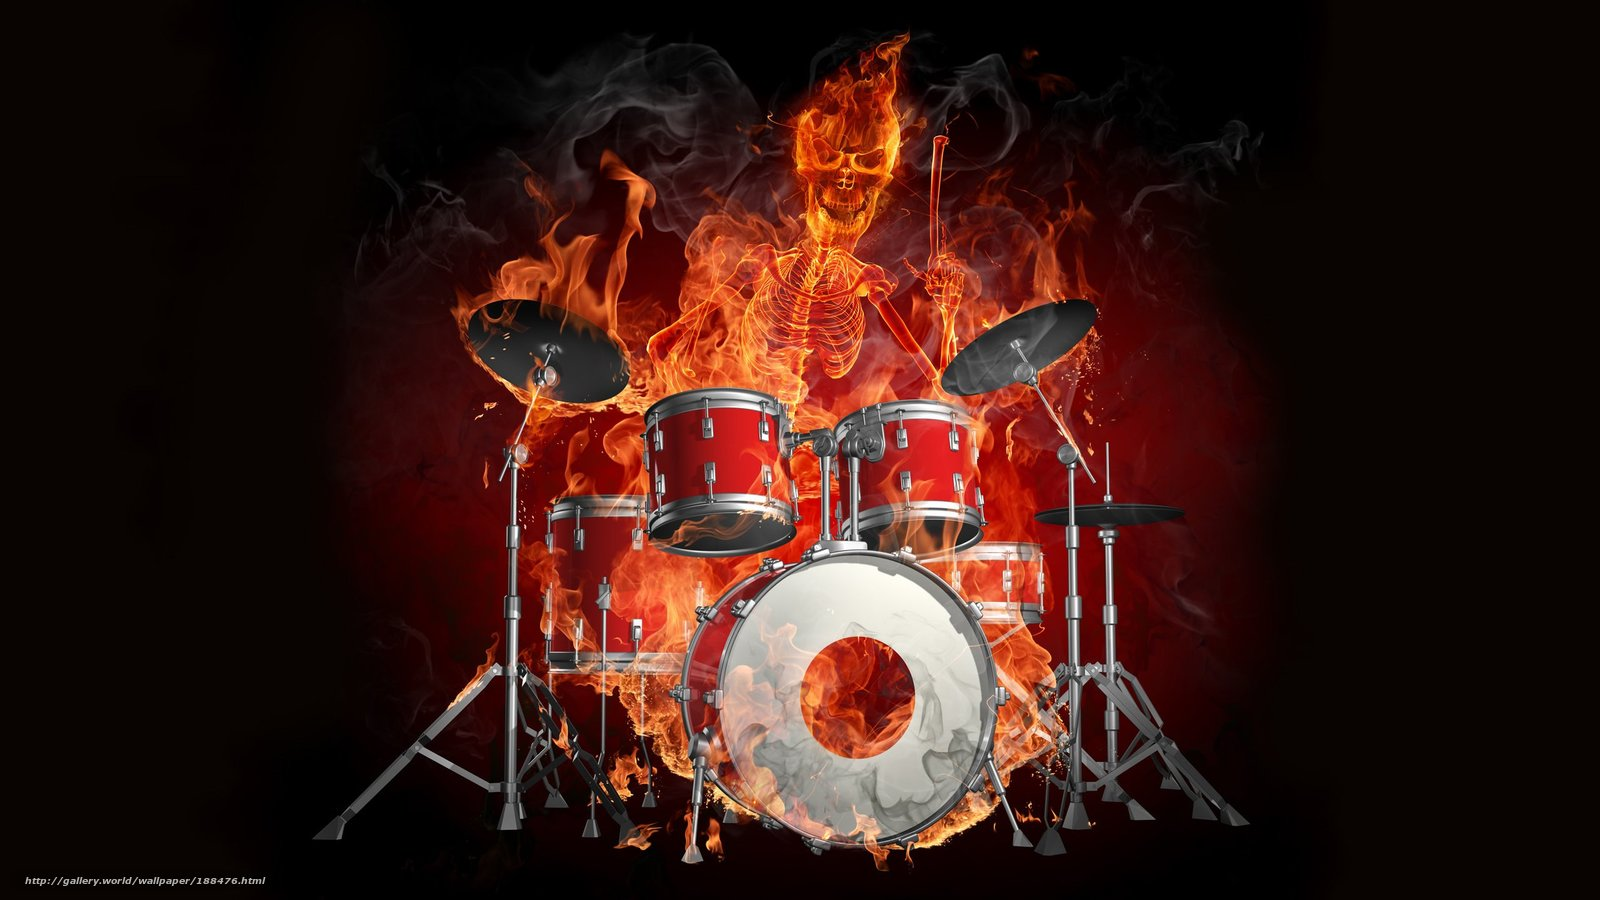 Download Wallpaper Drums Fire Demon Skull Free Desktop In The Resolution 2560x1440 Picture No188476